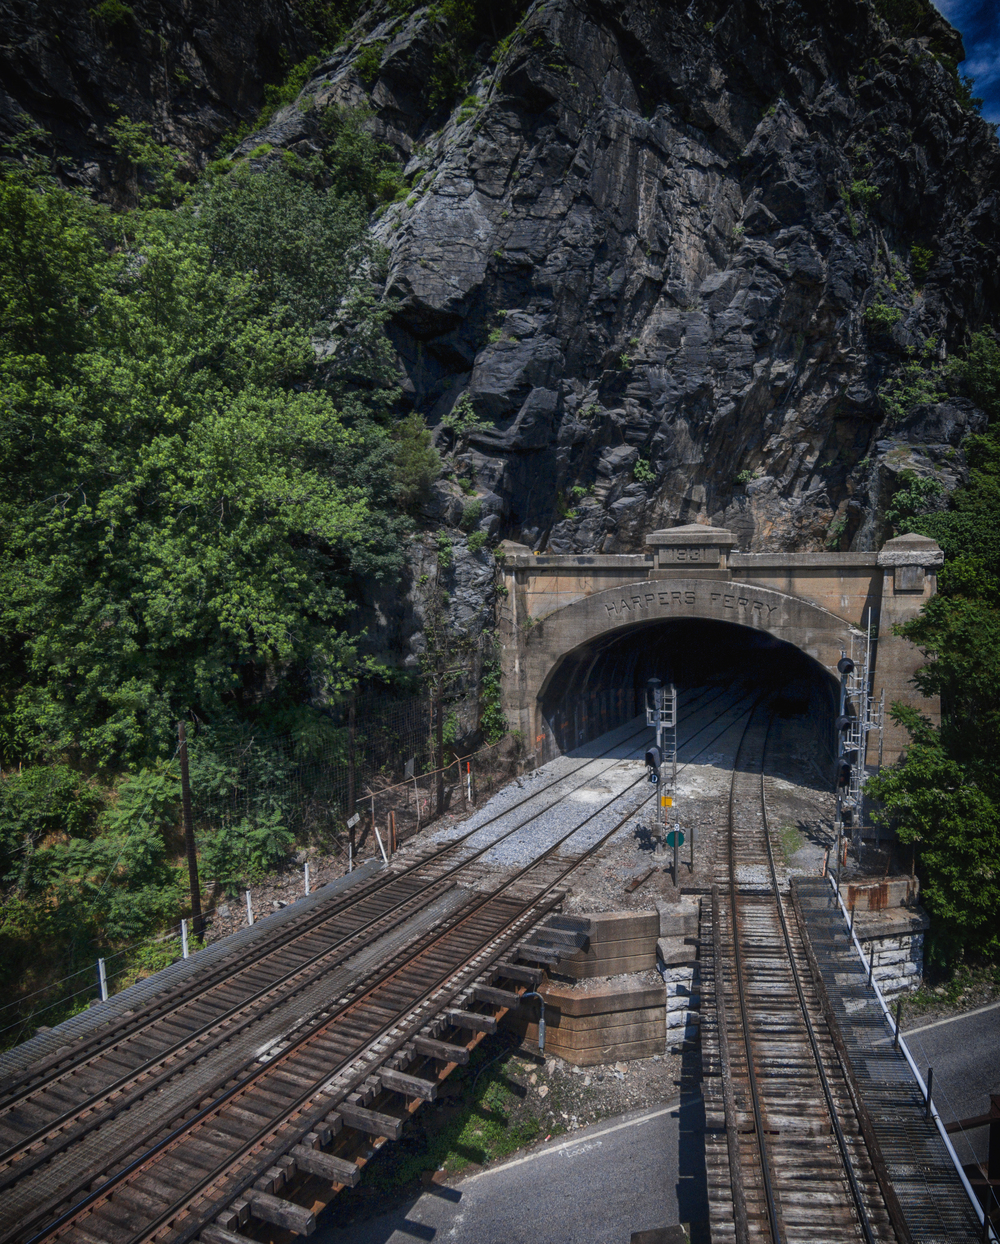 The Harpers Ferry train tunnel, as seen from above via a DJI Phantom Vision 2+ quadcopter.